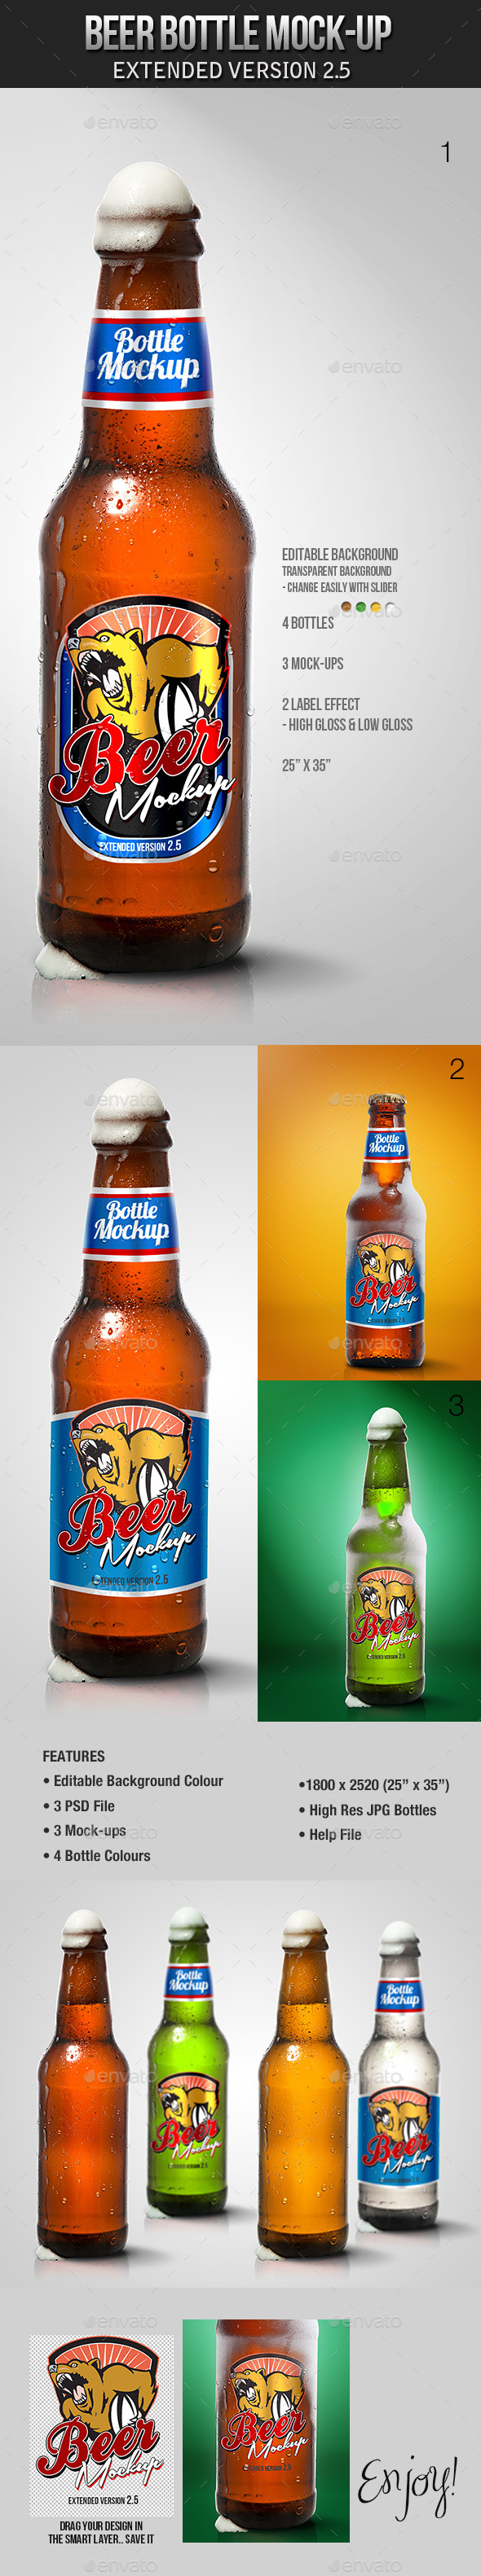 Beer Bottle Mockup V2.5 - Product Mock-Ups Graphics